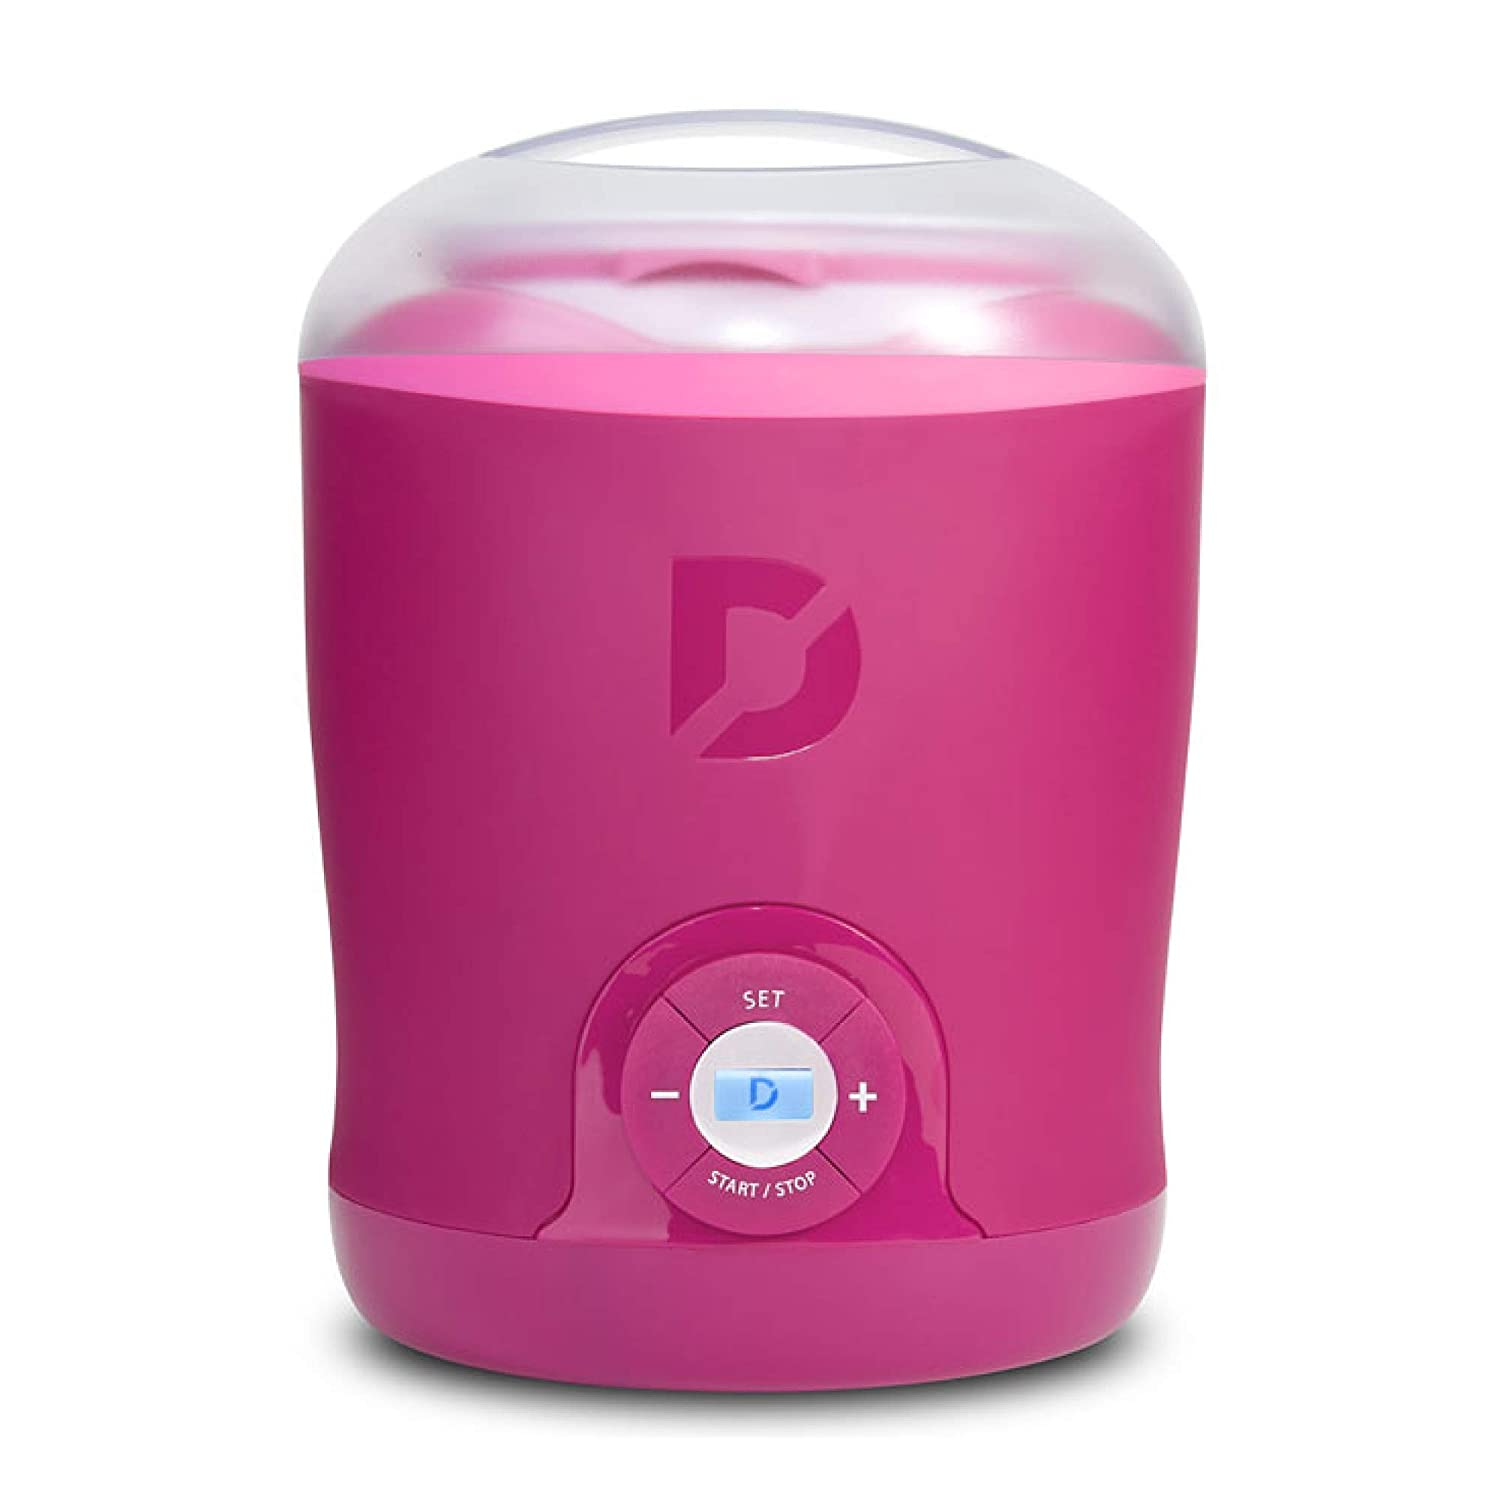 Dash DGY001PK Greek Yogurt Maker Machine with LCD Display + 2 BPA Storage Containers with Lids: Perfect for Organic, Sweetened, Flavored, Plain, or Sugar Free Options for Baby, Kids, Parfaits, Pink